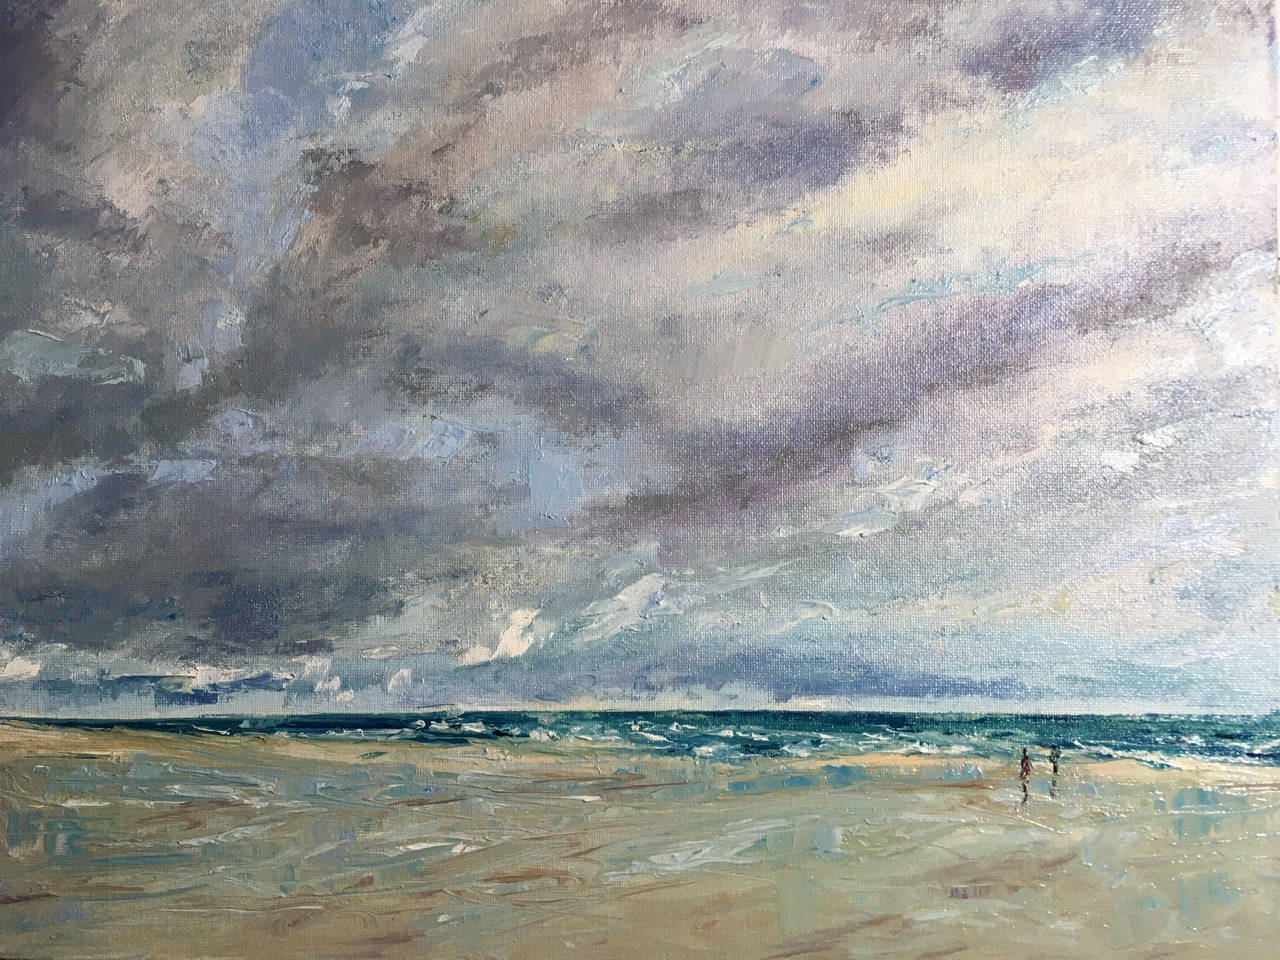 Winter day on the beach, oil painting by Anna Cumming